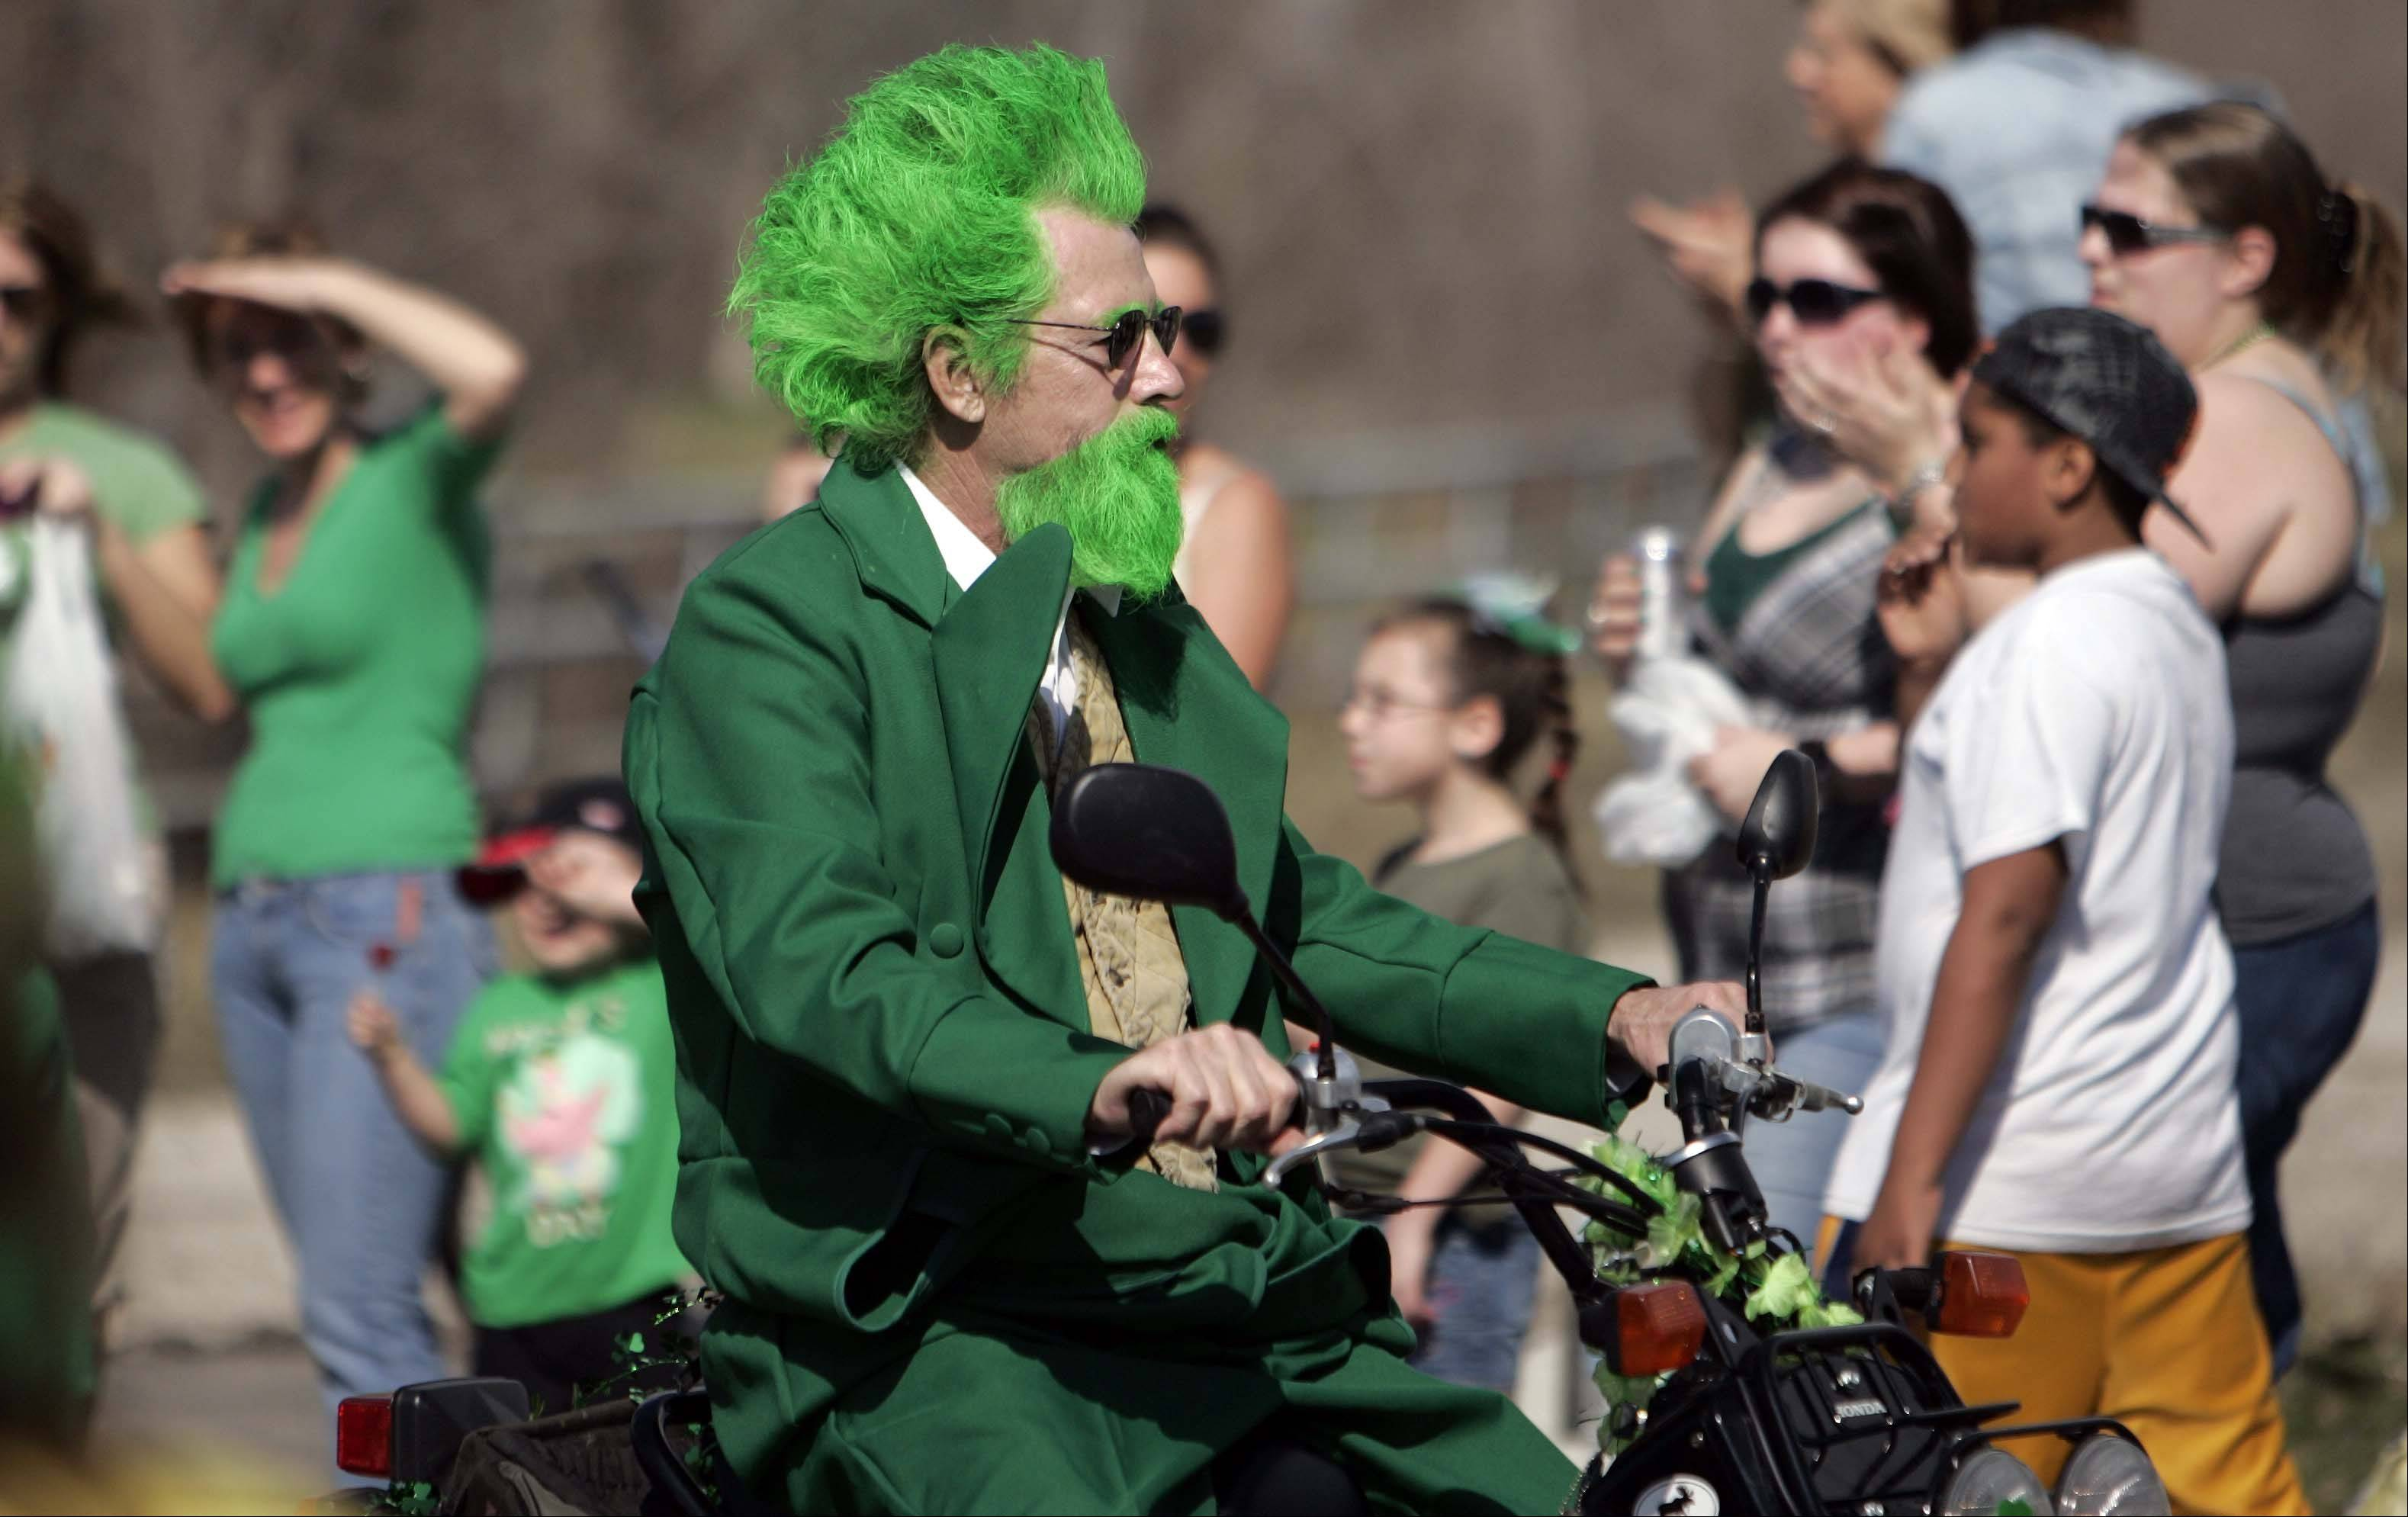 With a green suit to match his bright green hair, Kevin Combest rides through the Thom McNamee Memorial St. Patrick�s Day Parade in East Dundee last year. This year�s parade is Saturday, March 16.